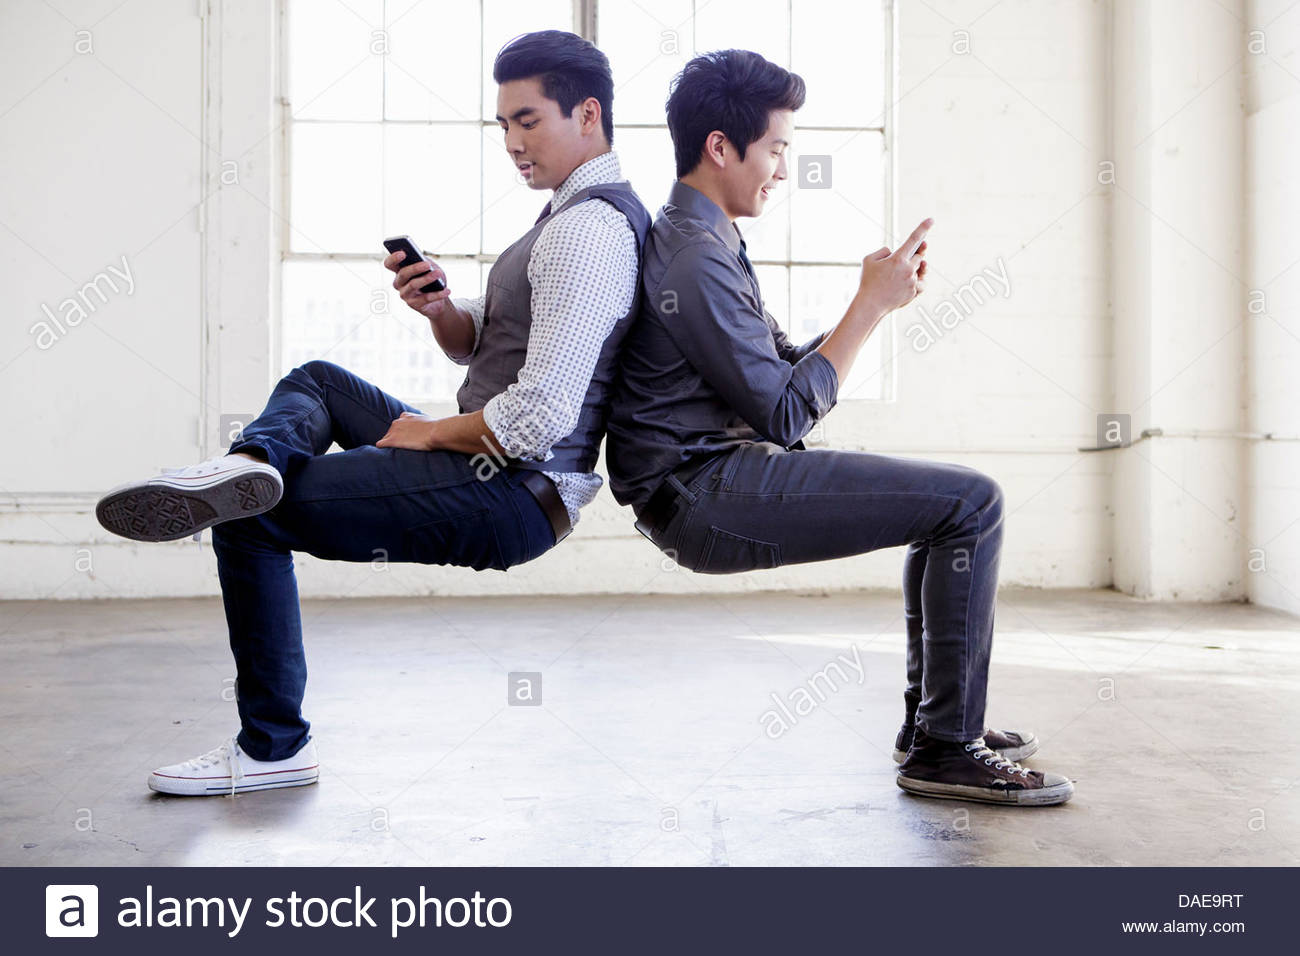 Two young men create back to back void in empty office - Stock Image